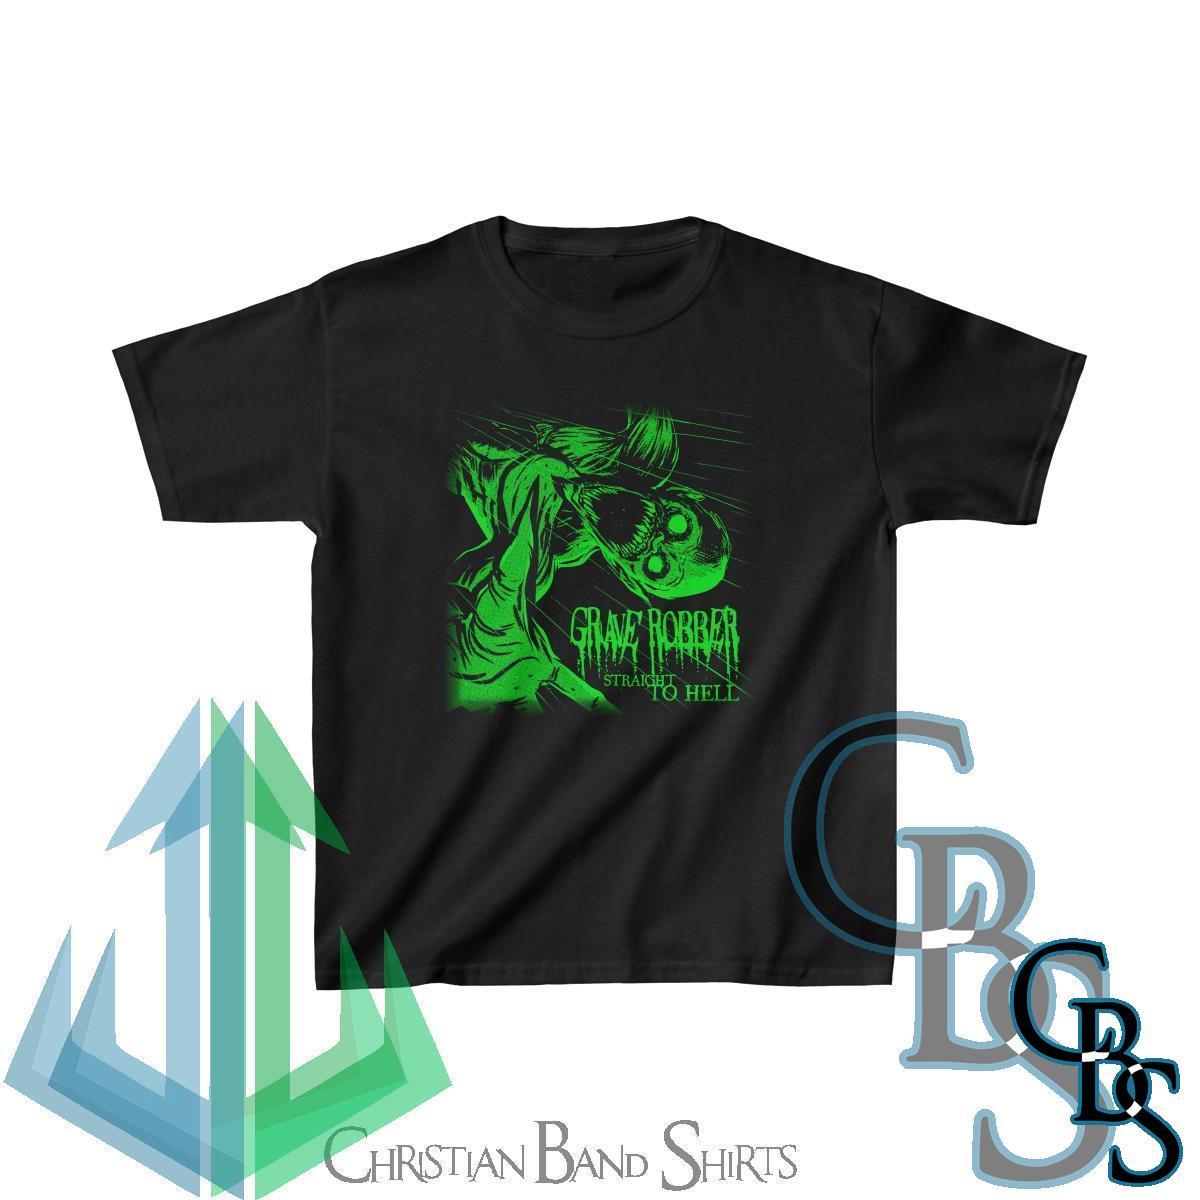 Grave Robber – Straight to Hell (Green) Kids Tshirt